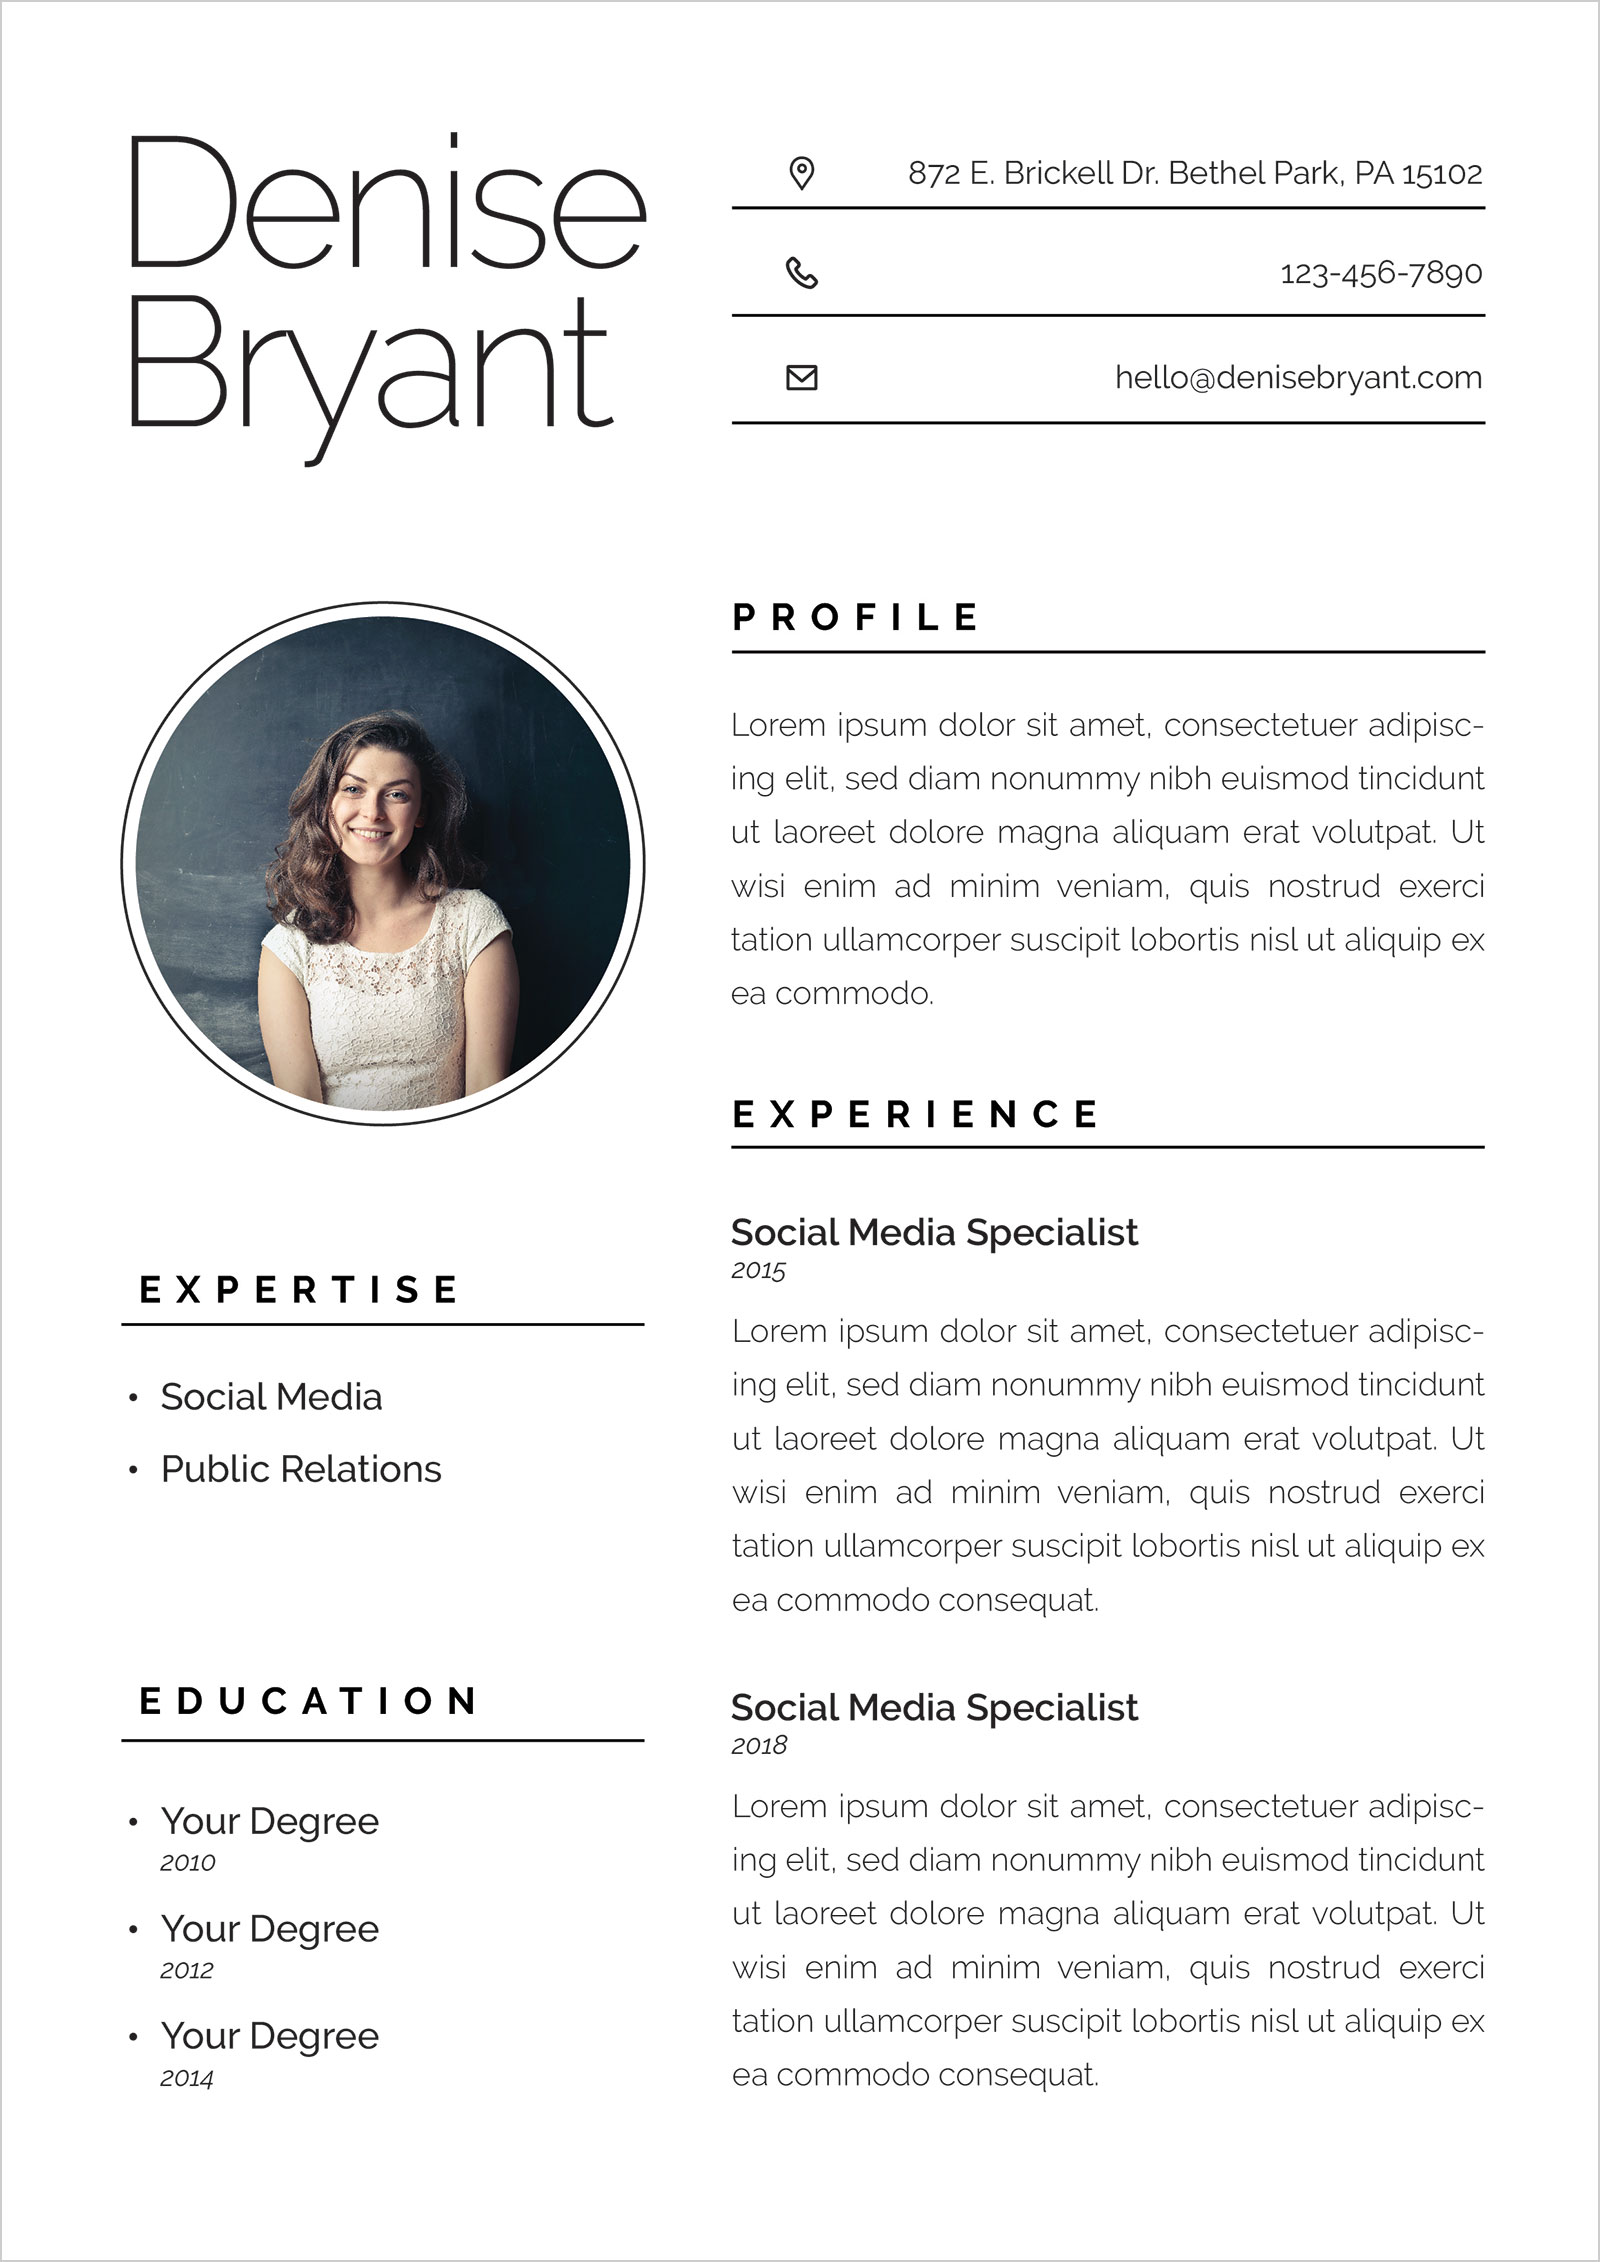 Free Ai Resume CV Format For Social Media Specialists Amp Public Relation Officers Good Resume